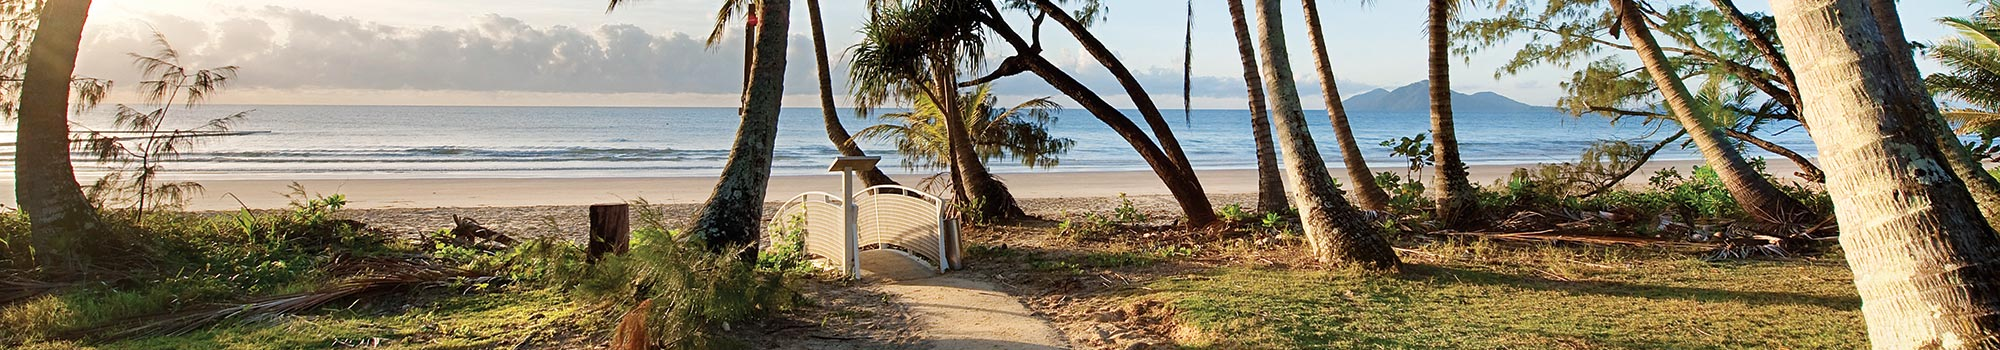 Mission Beach Queensland